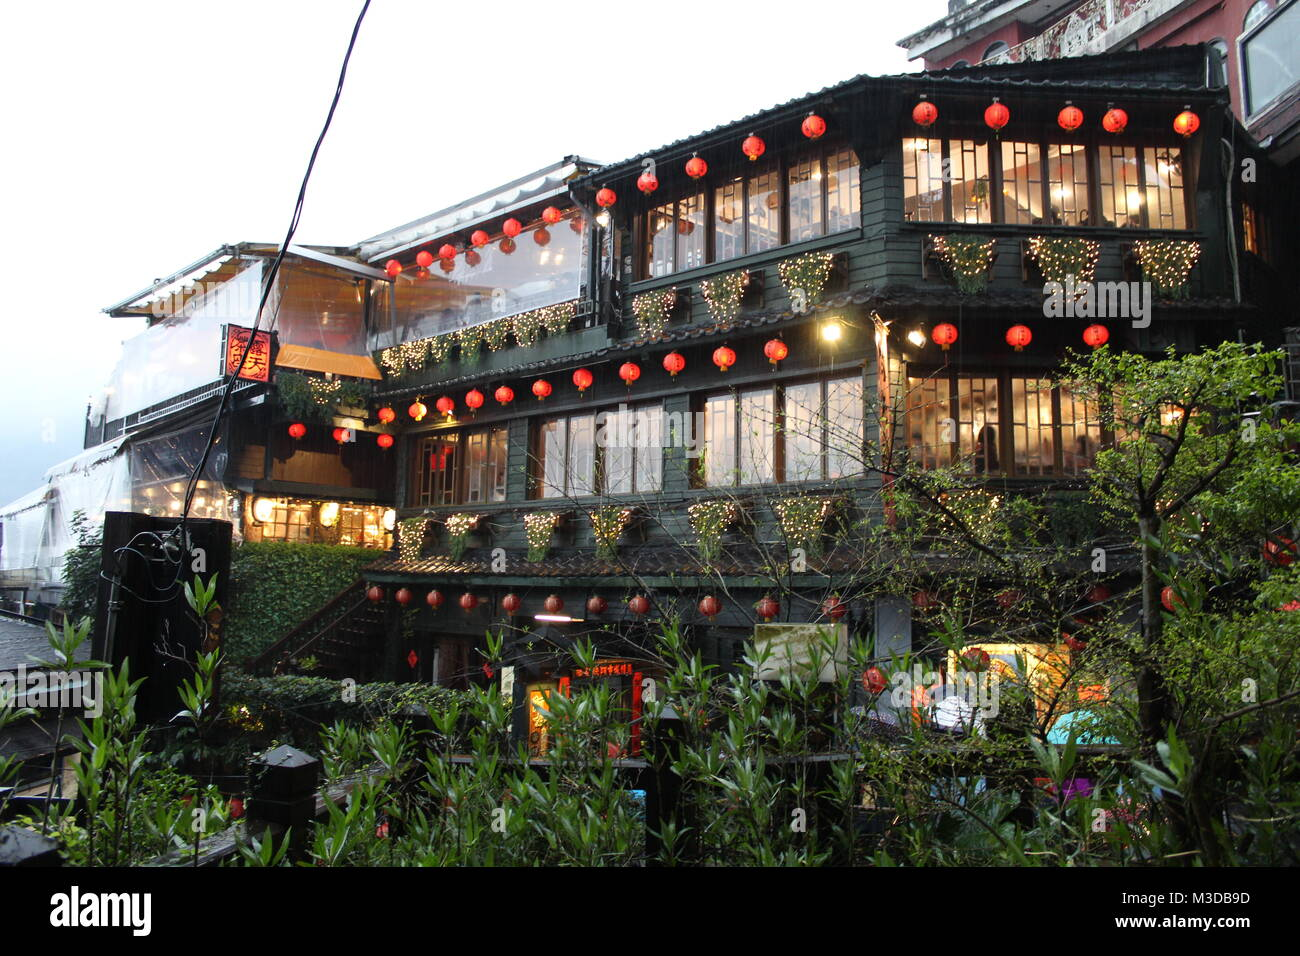 Teahouse in Jiufen, Taiwan on a rainy afternoon. Inspiration for